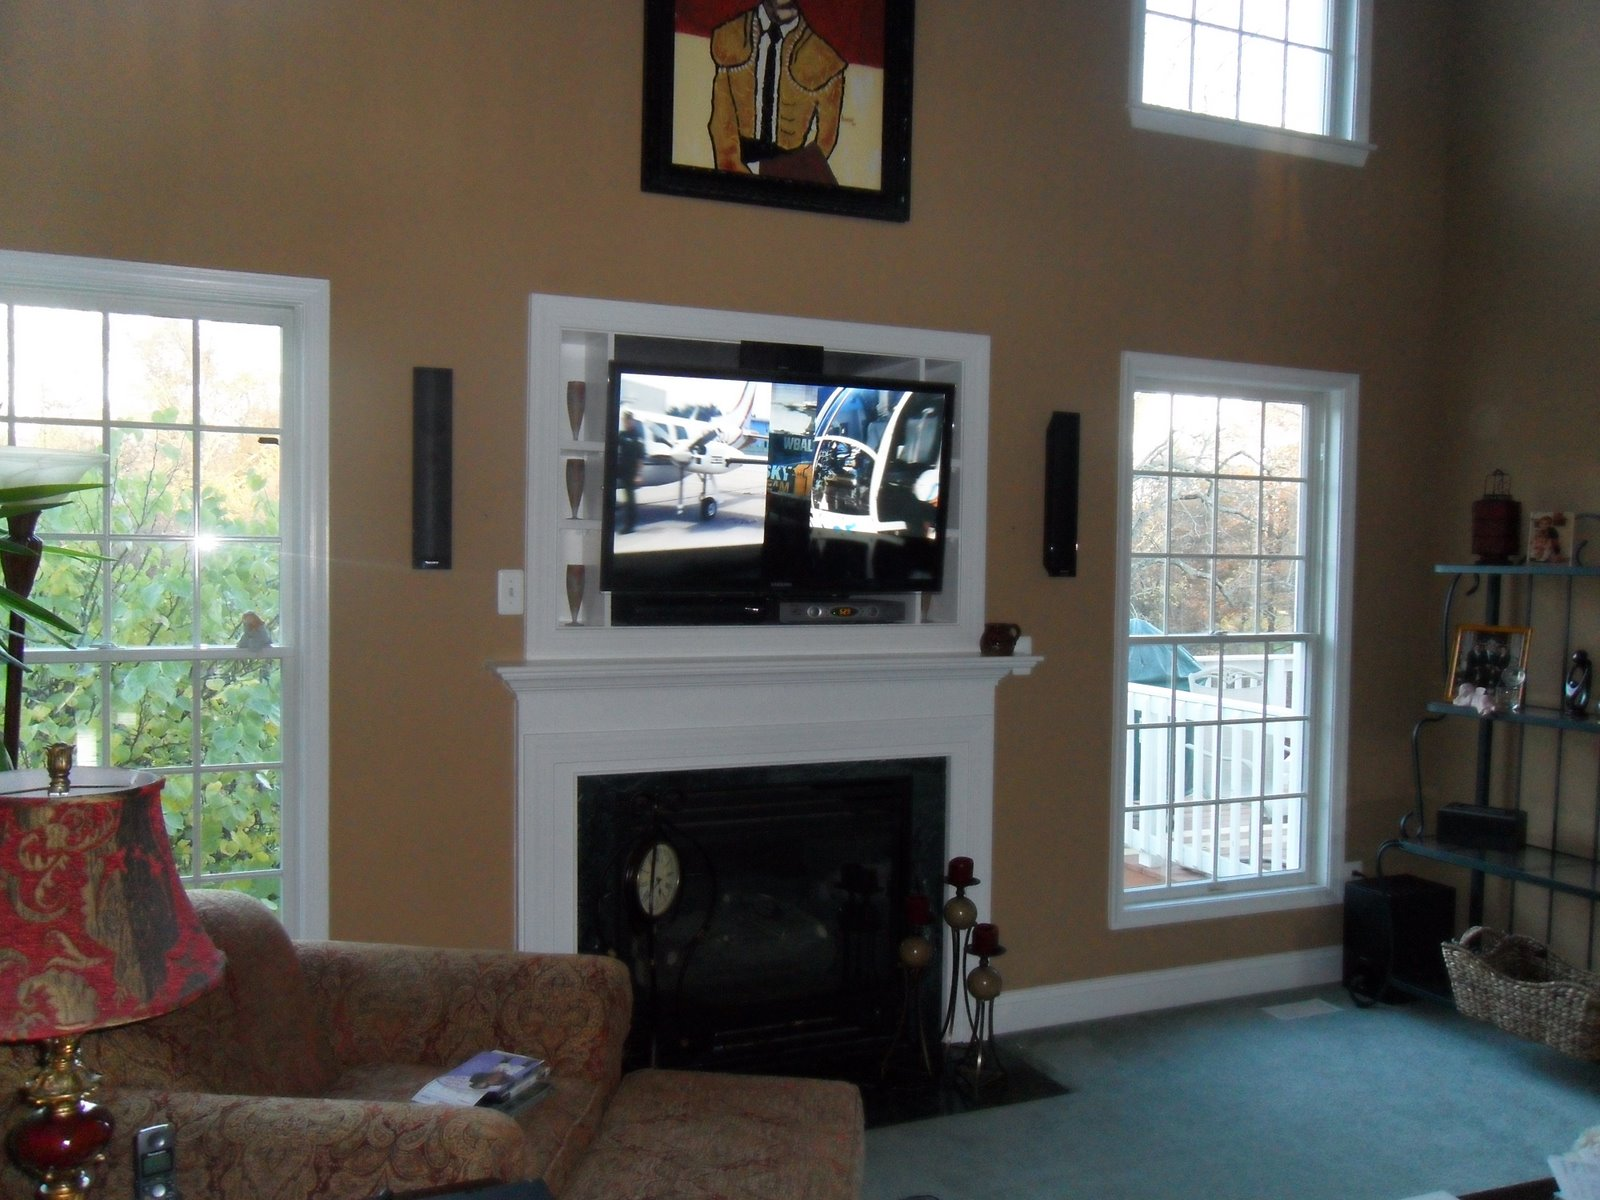 ... Installation Maryland: LED TV installed above fireplace in Bel Air, MD